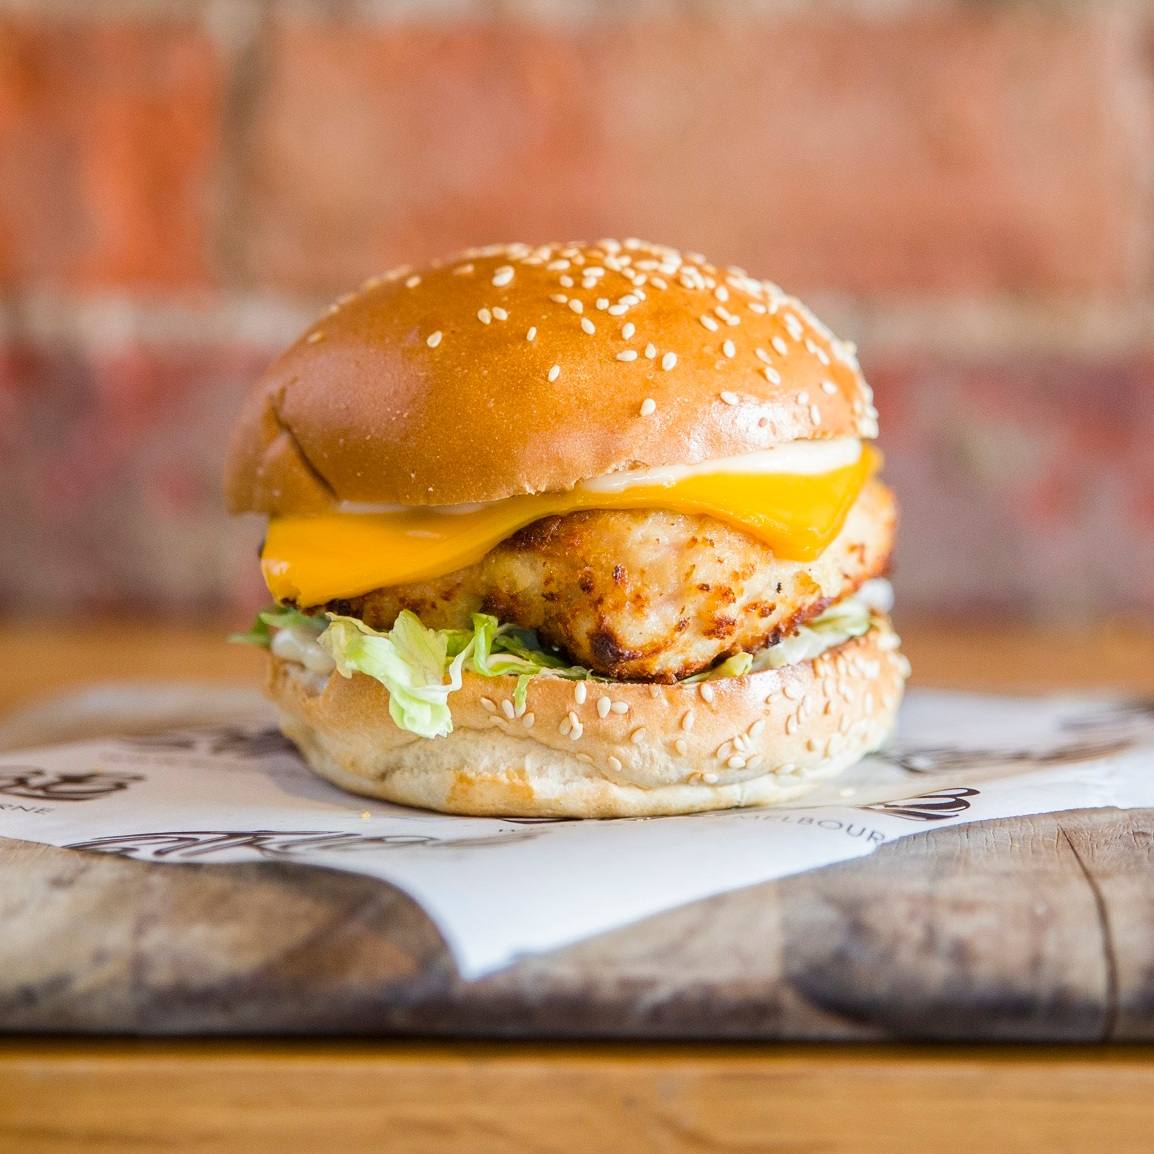 kids crumbed chicken - Cheese, lettuce, mayo$8